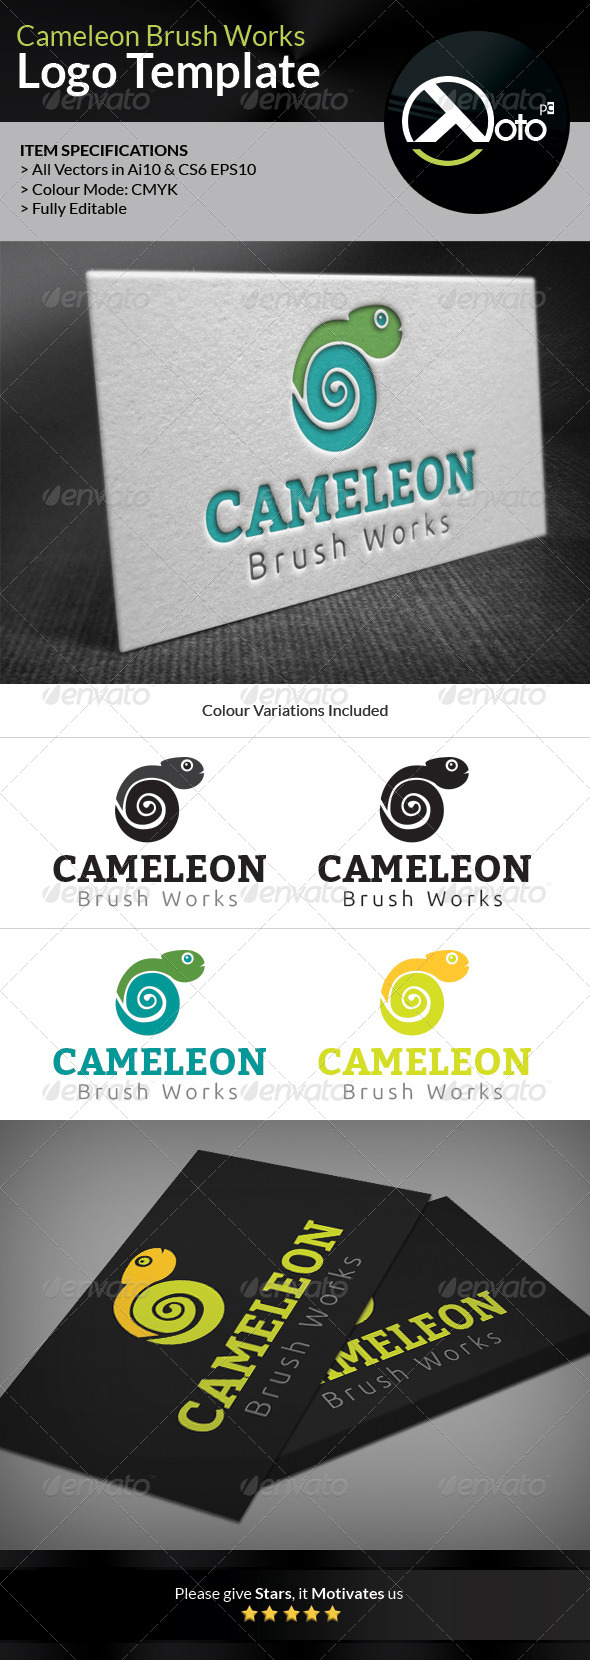 Cameleon Brush Works Logo - Animals Logo Templates